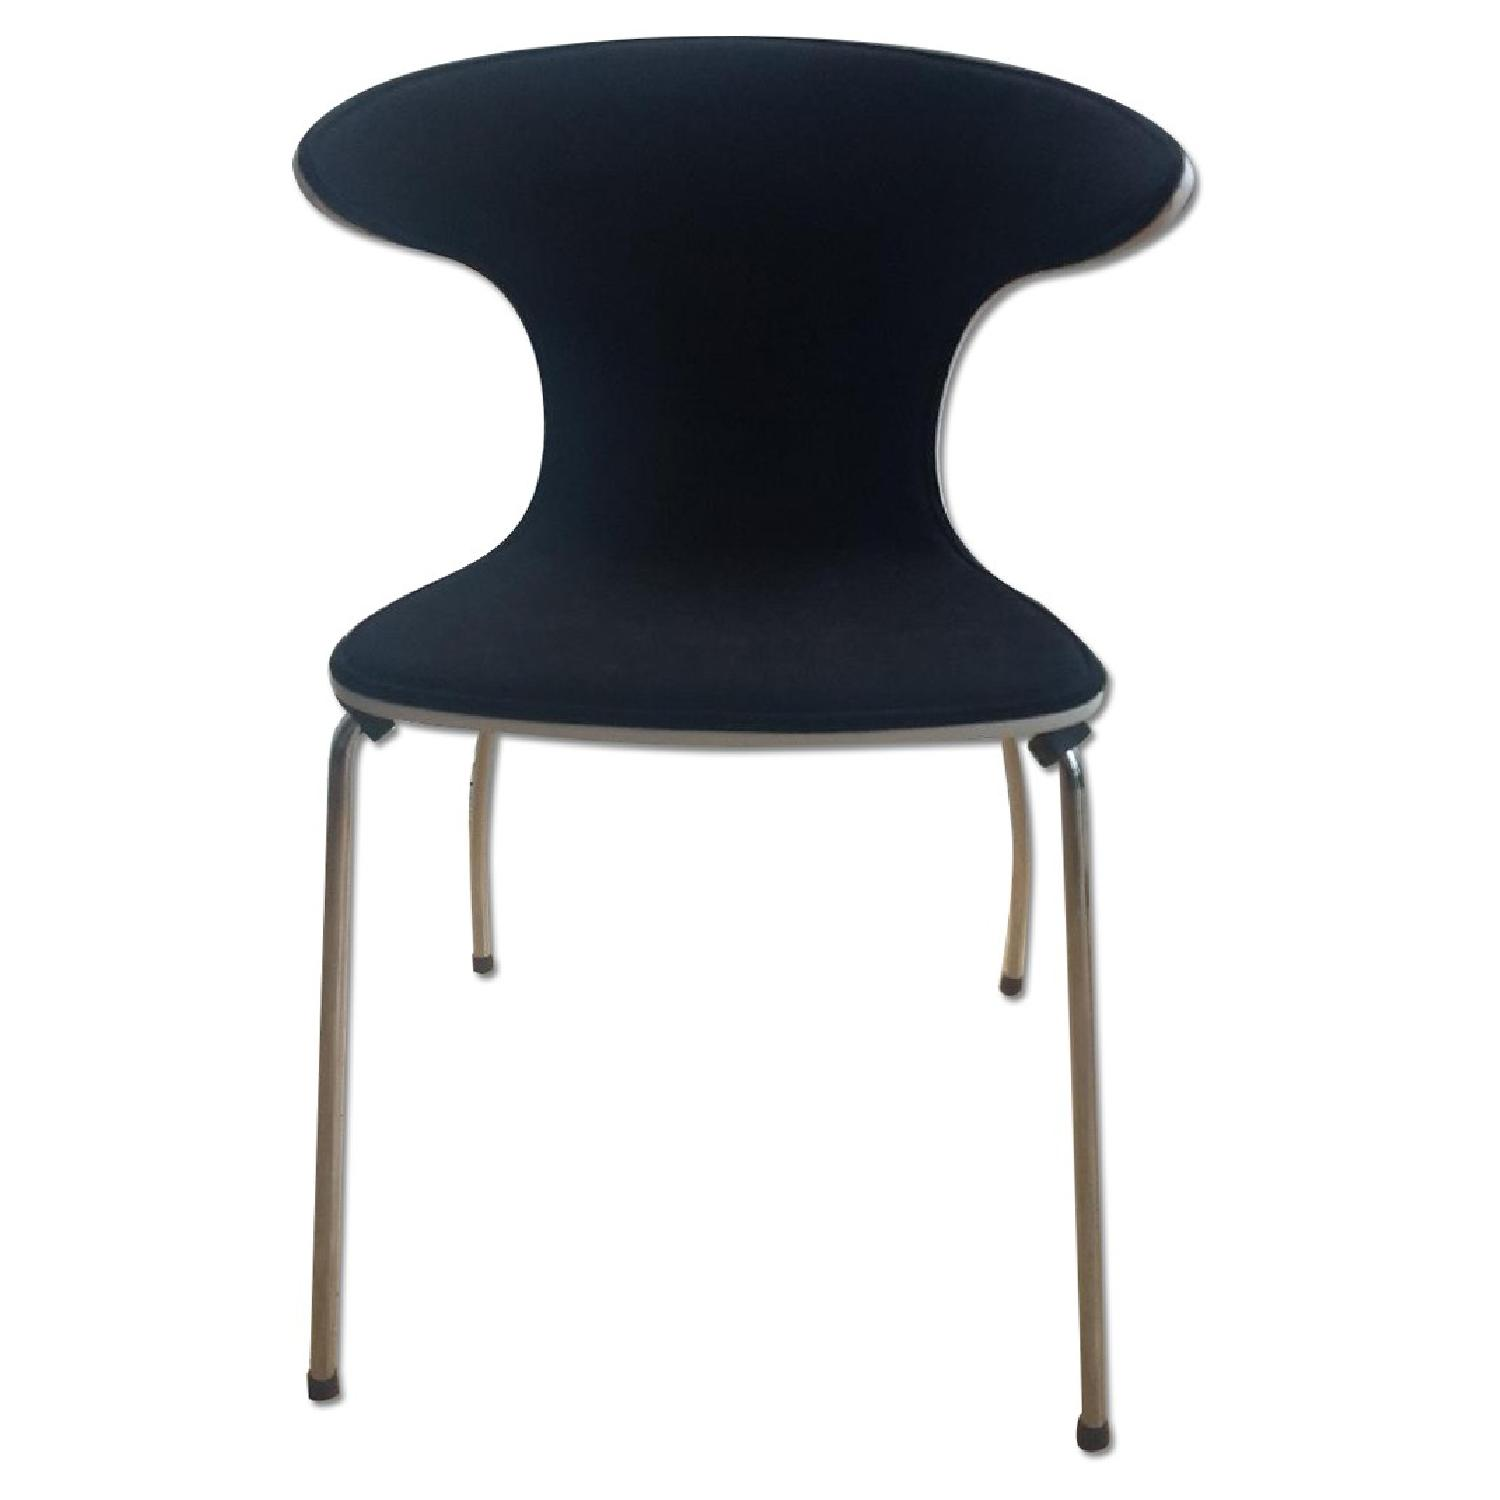 Mod Winged White & Black Dining Chairs